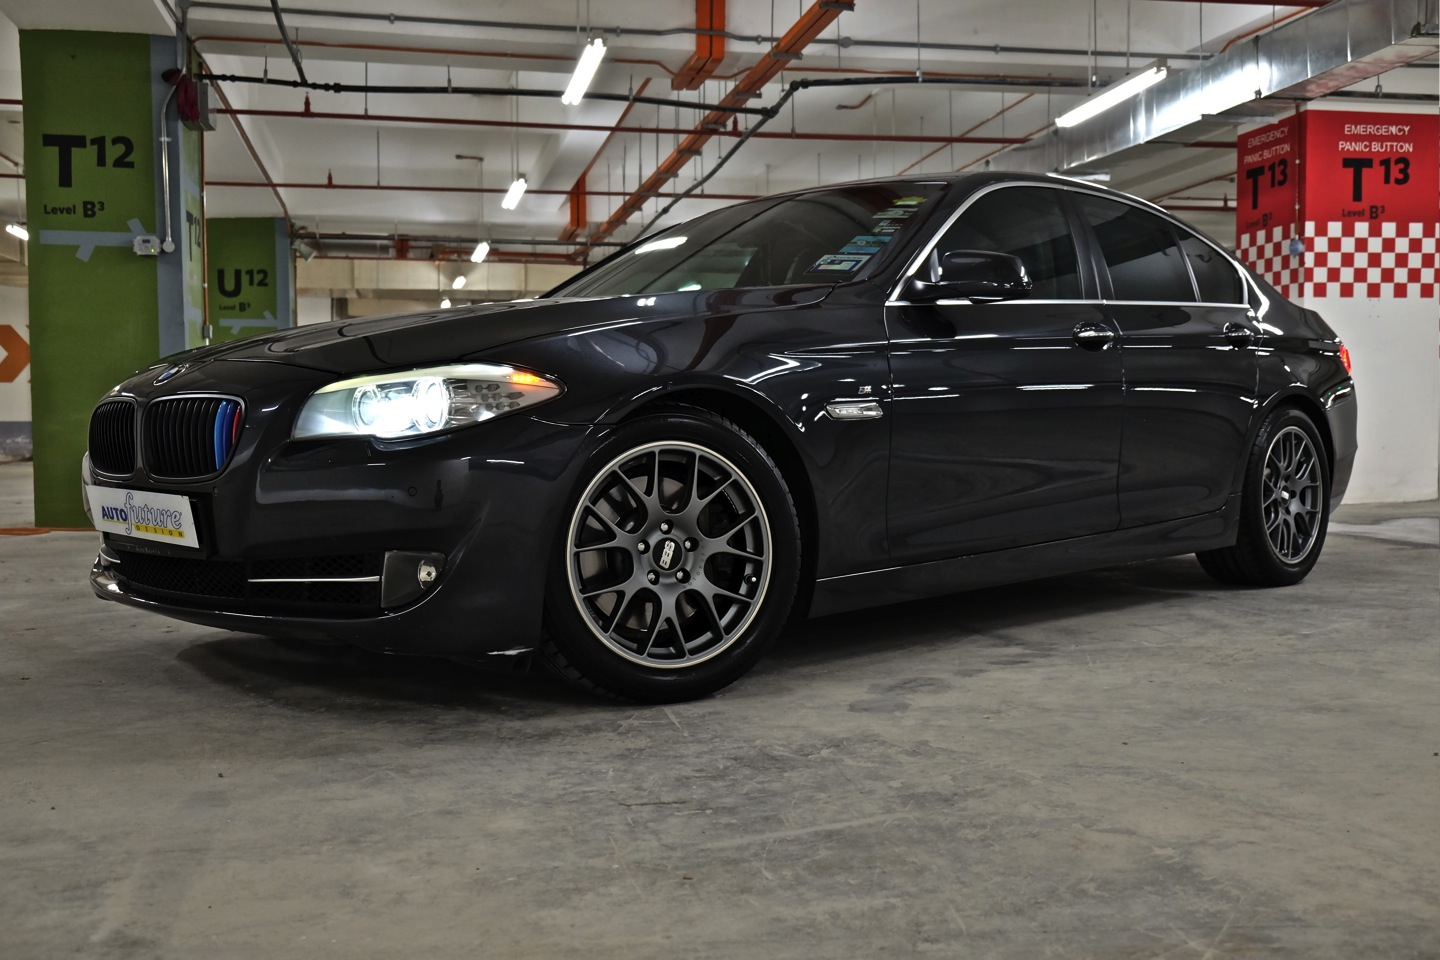 Undersized Amp Aggressive Bmw F10 535i Equipped With Bbs Ch